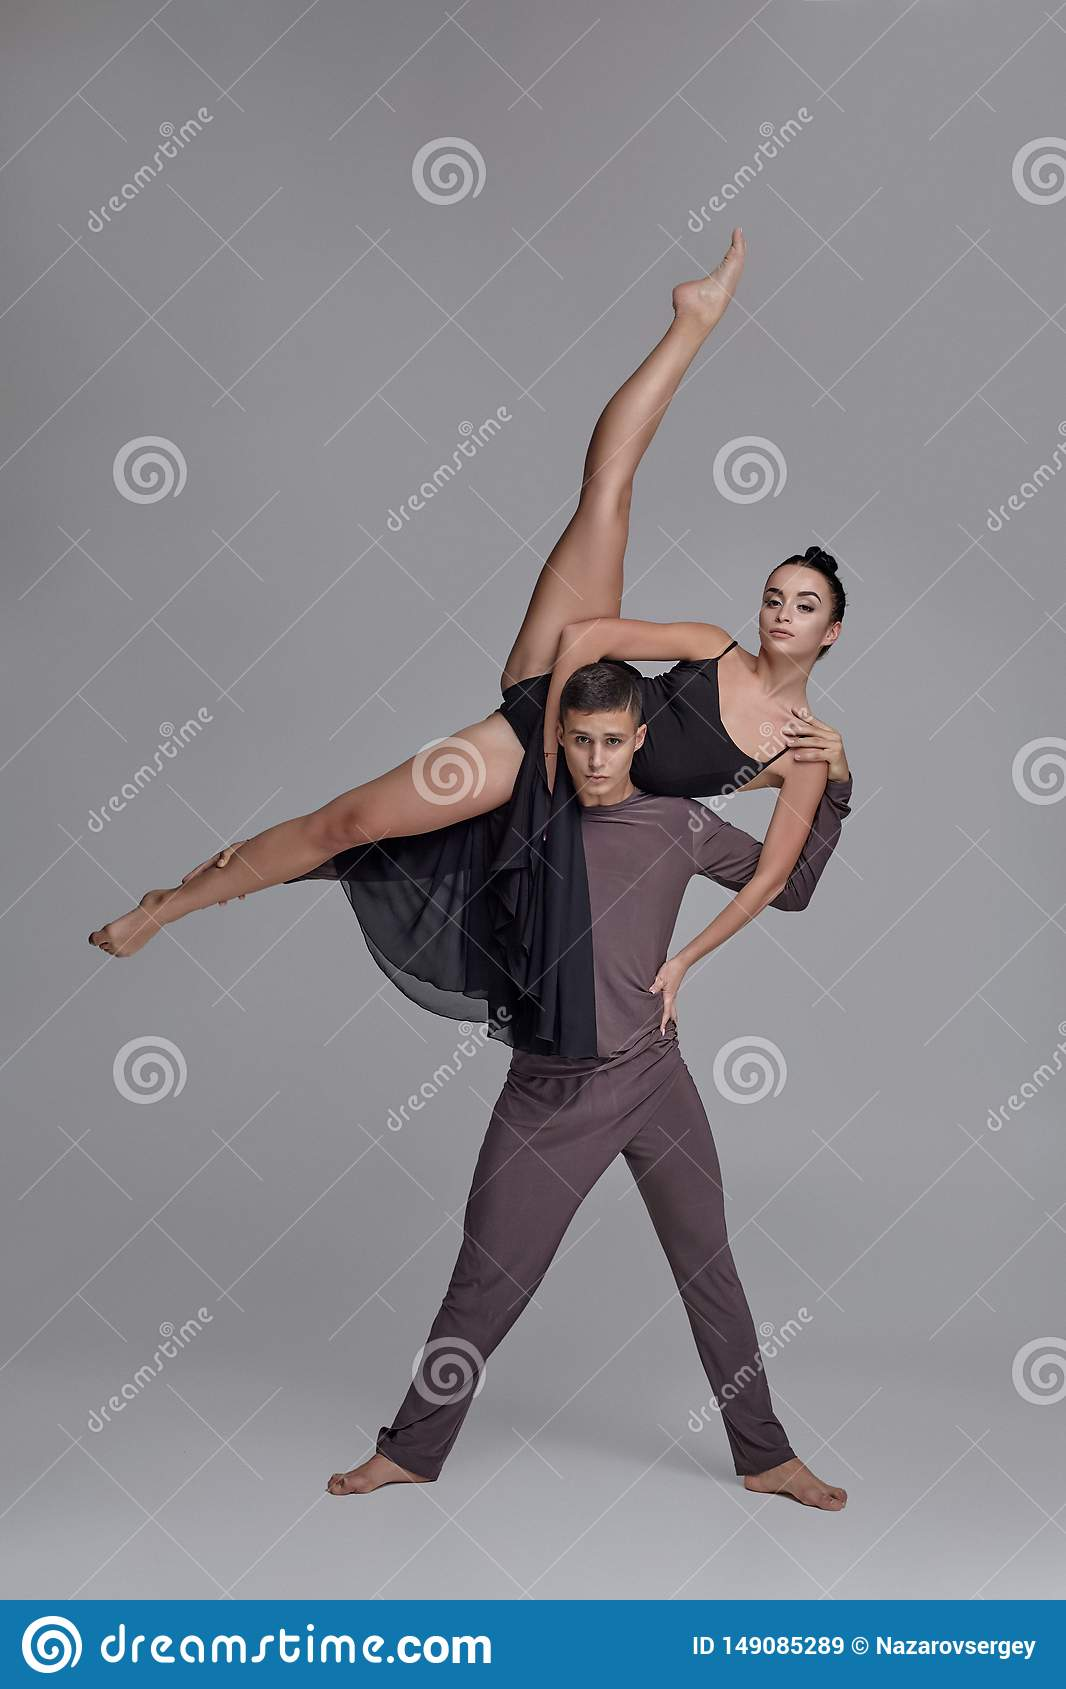 Two Athletic Modern Ballet Dancers Are Posing Against A Gray Studio  Background. Stock Image - Image of muscular, ballet: 149085289